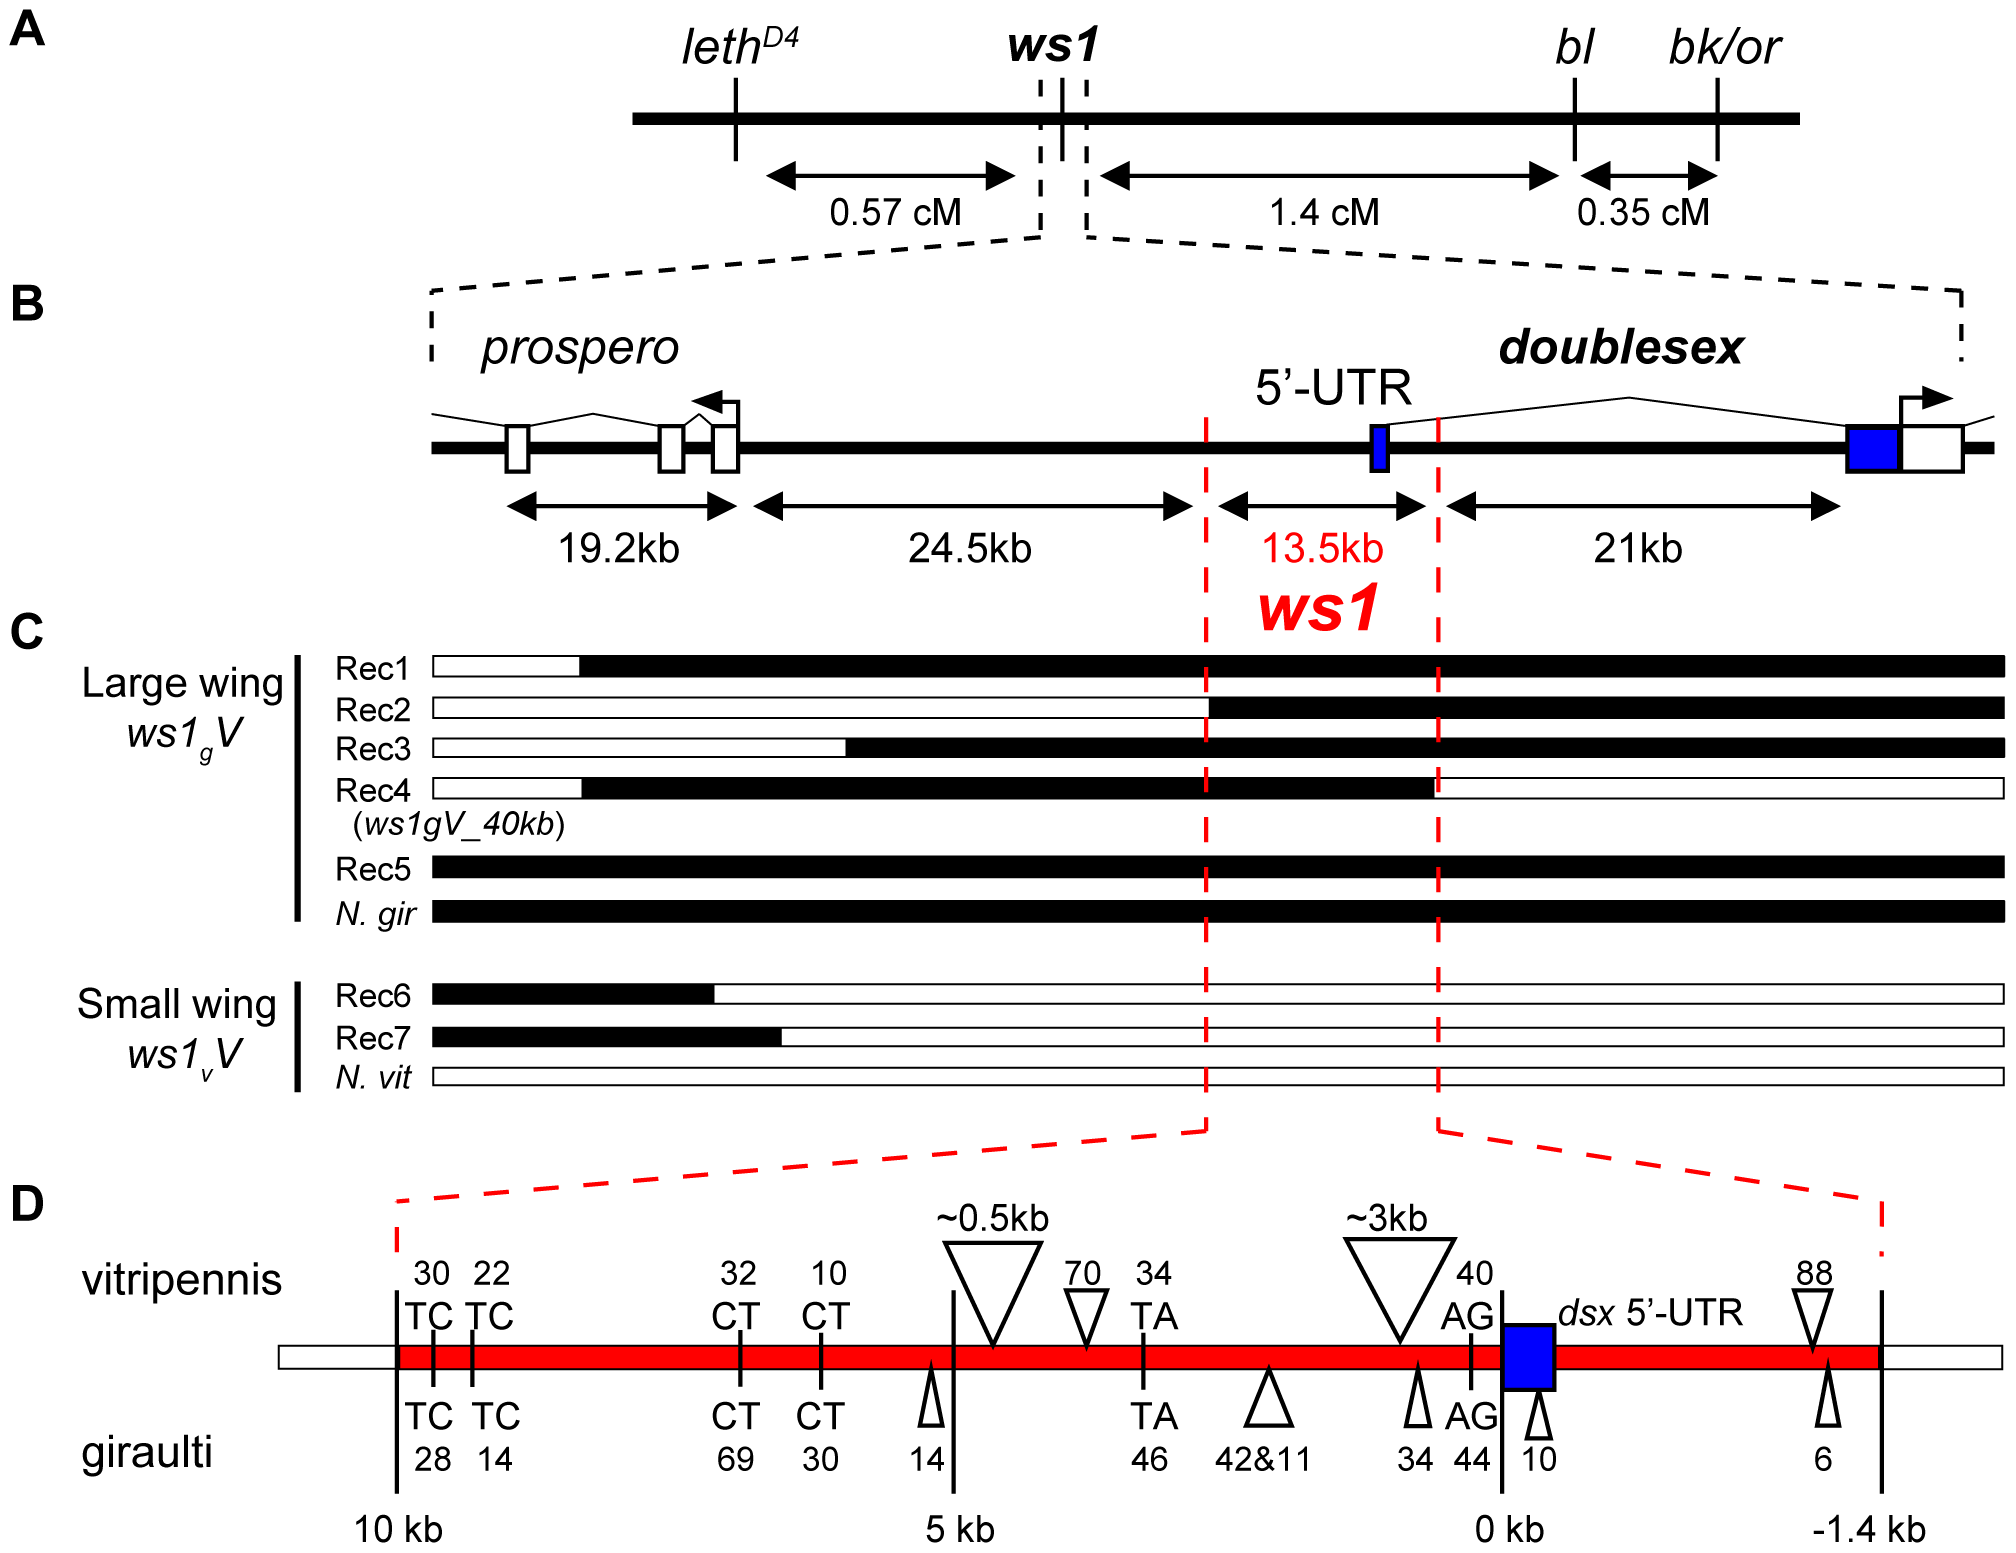 Positional cloning: <i>ws1</i> maps to the <i>doublesex</i> locus.